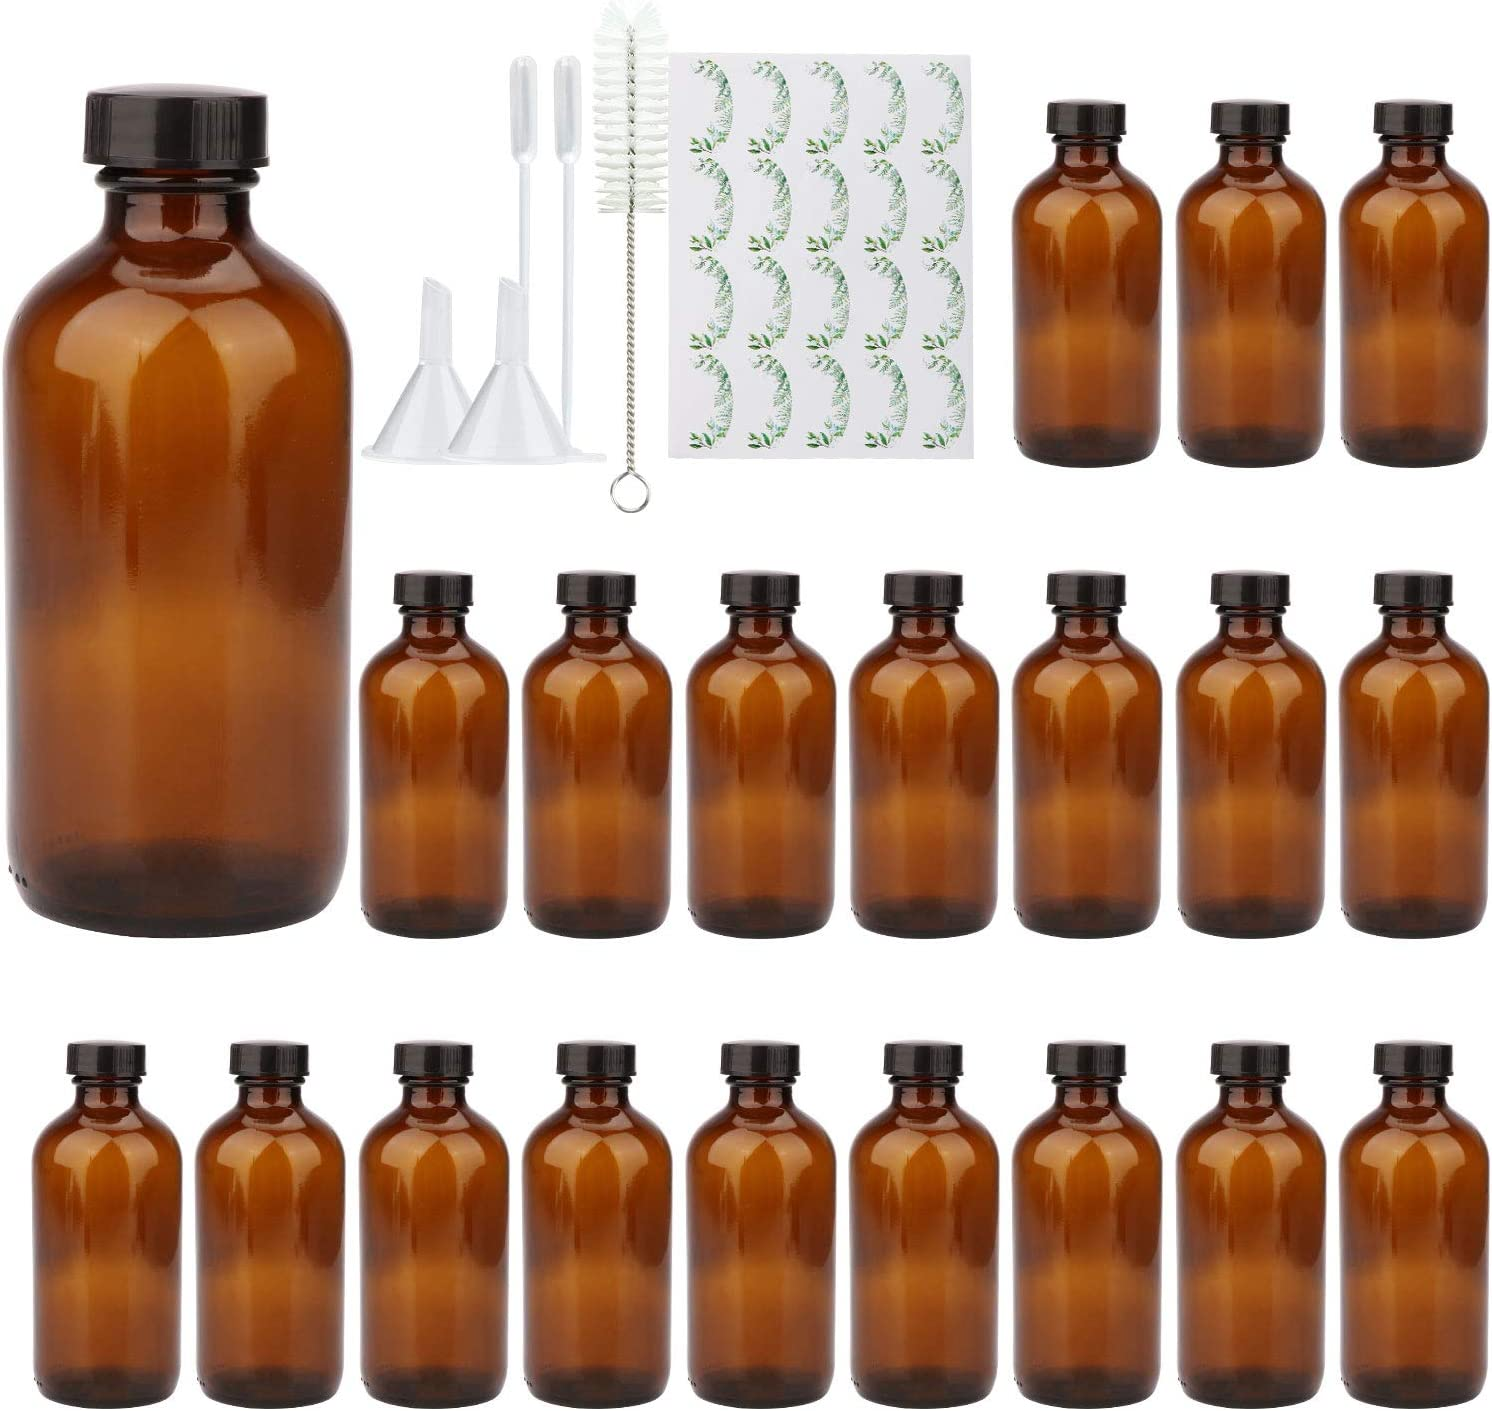 8oz Durable Glass Bottle, Reusable Glass Bottles with Airtight Lid for Shampoo, Conditioner, Essential Oils, Set of 20 (Brown)